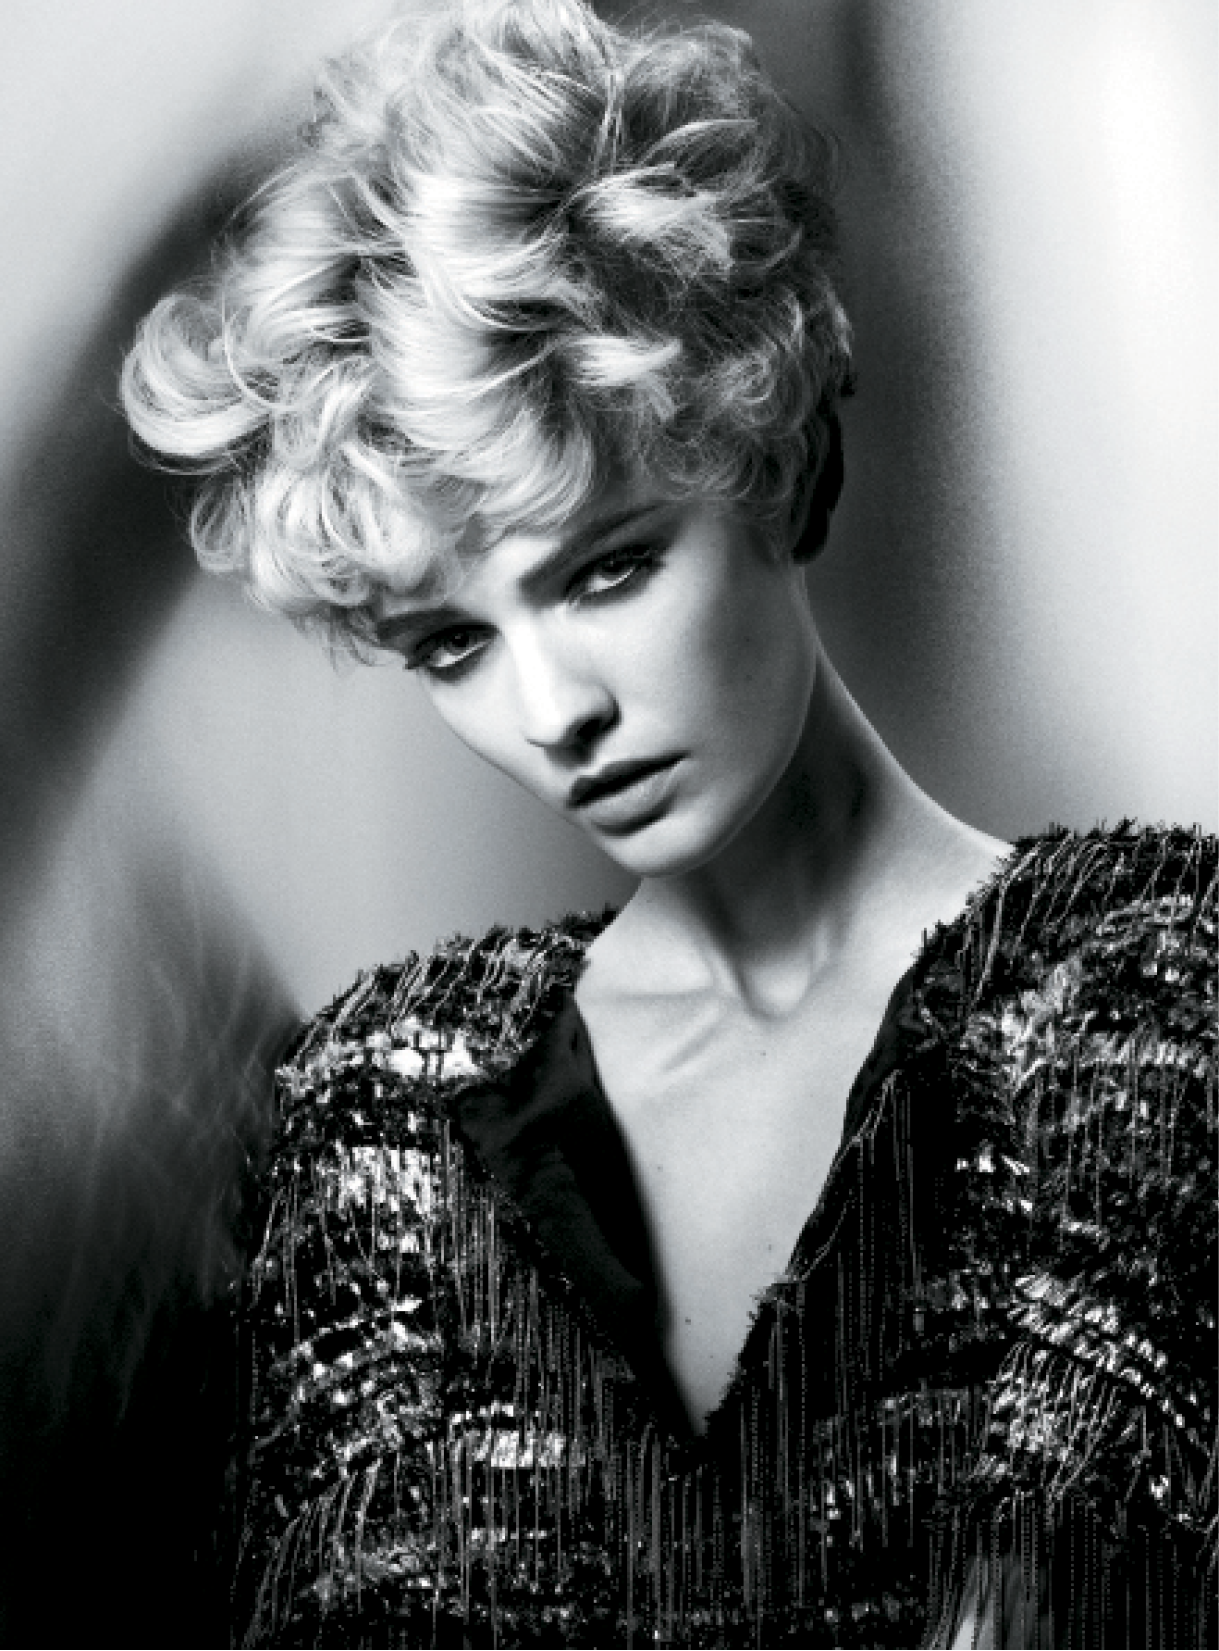 First, Leeson applied volumizing mousse to damp hair and blow-dried it with a medium radial brush before using two different-sized curling irons for enhanced volume and soft texture. After curling the hair in a random pattern, he blasted texture spray onto the hair with a blow-dryer to boost definition.